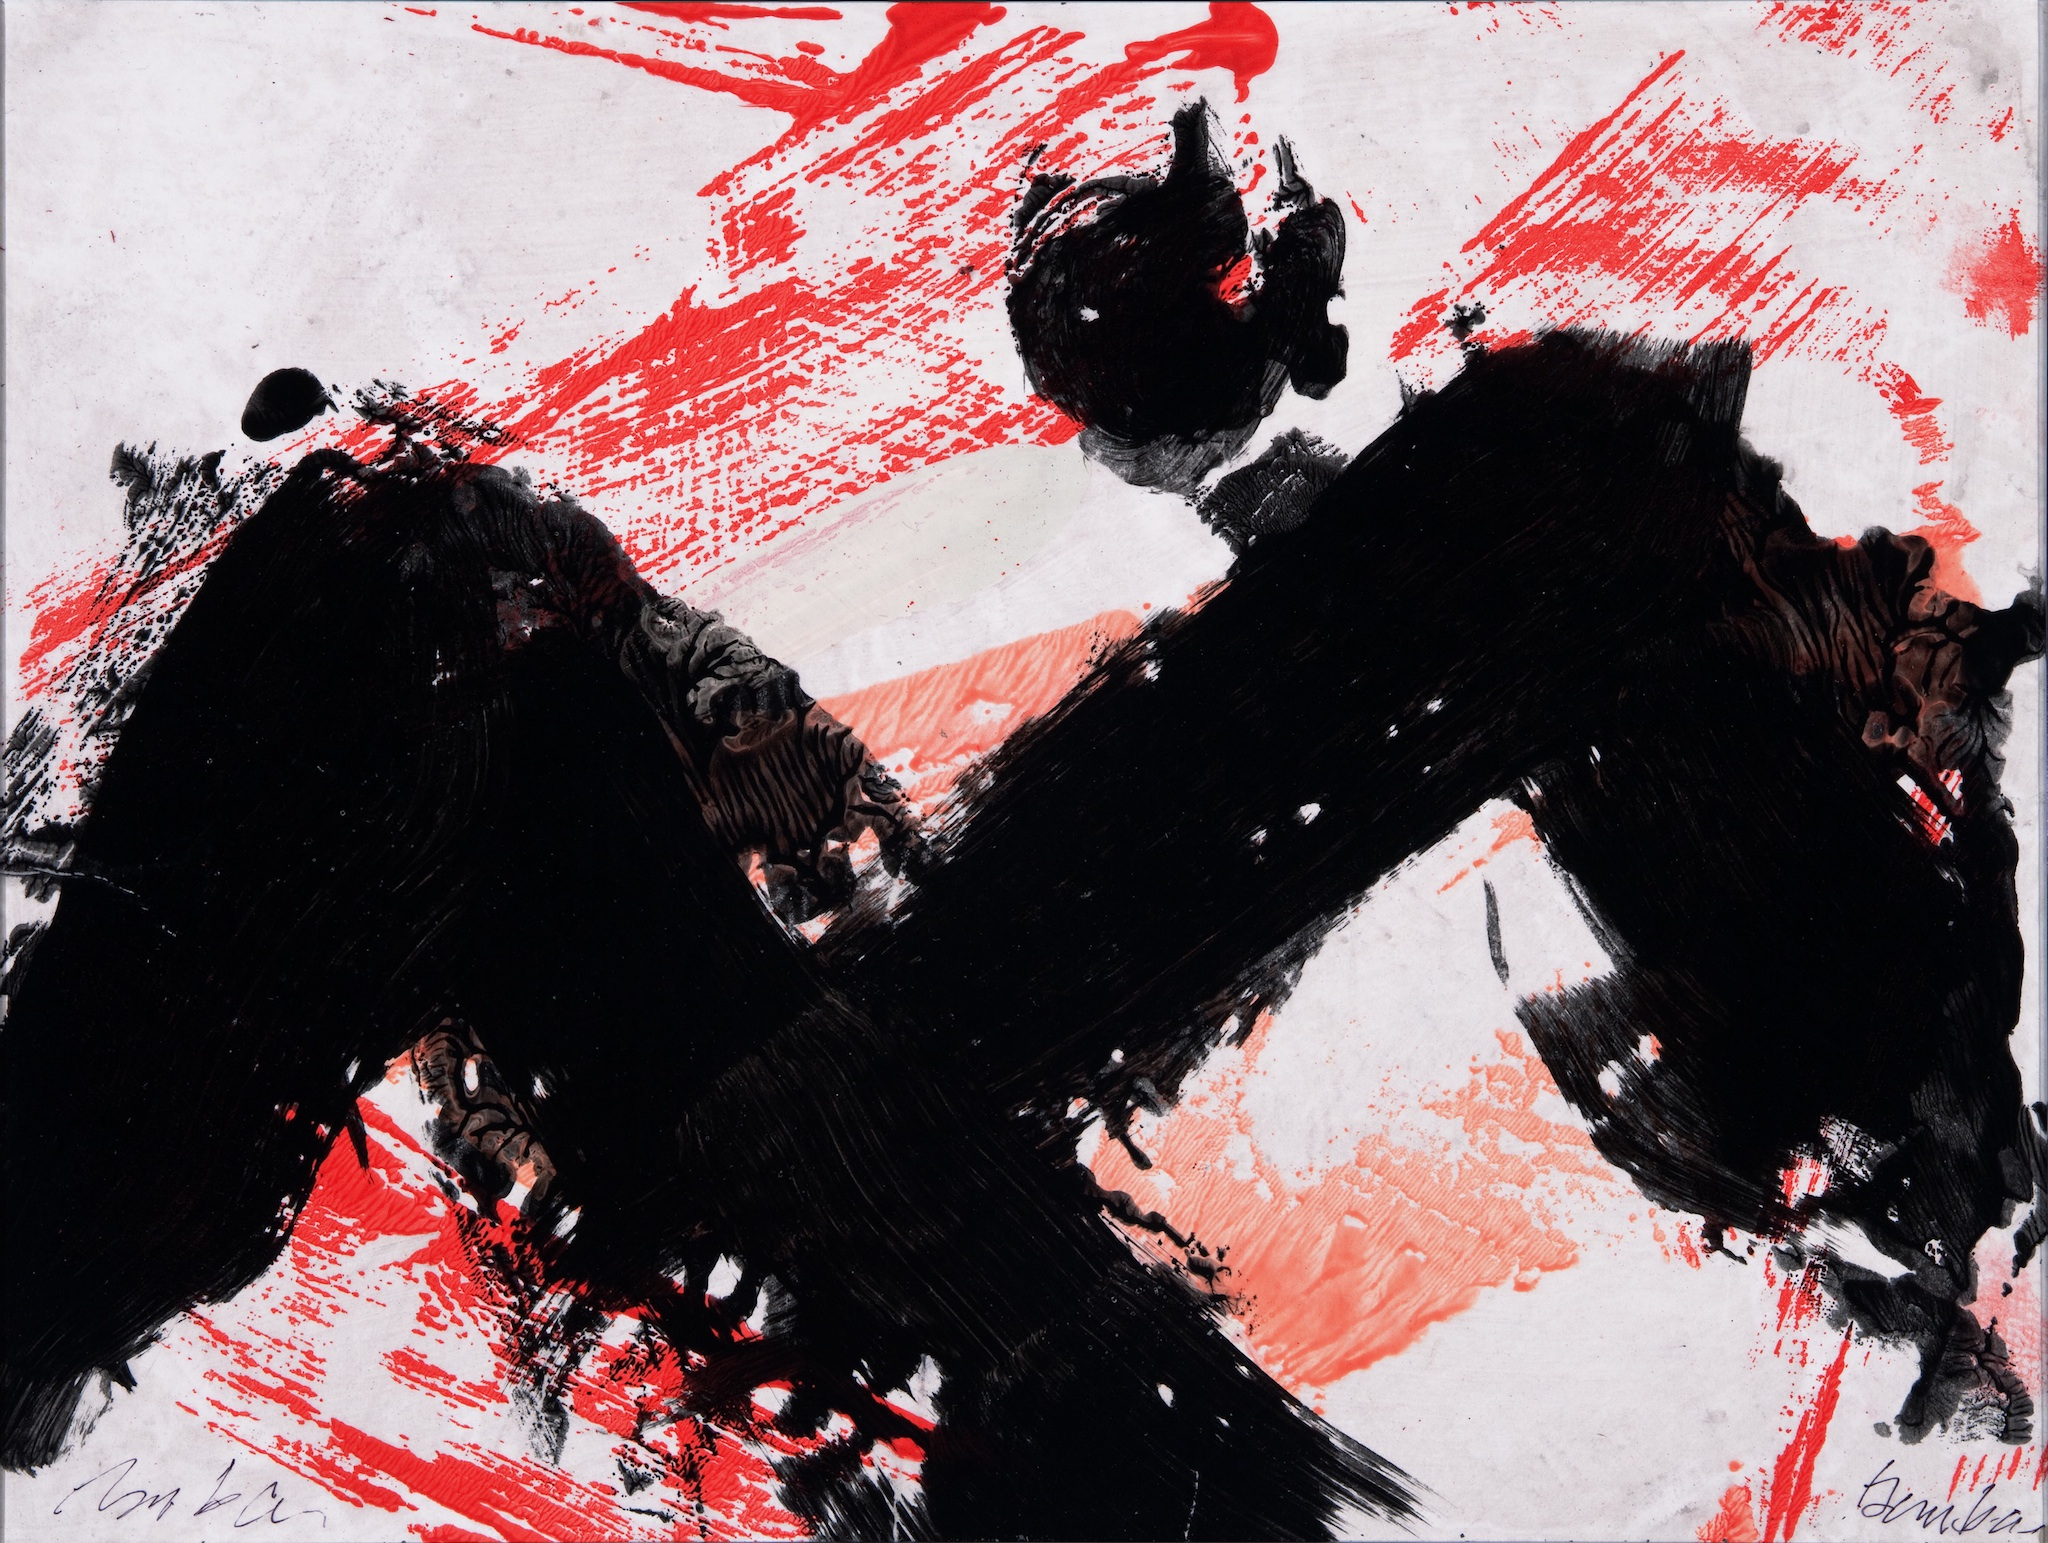 Action Painting Series No. 13, 2011